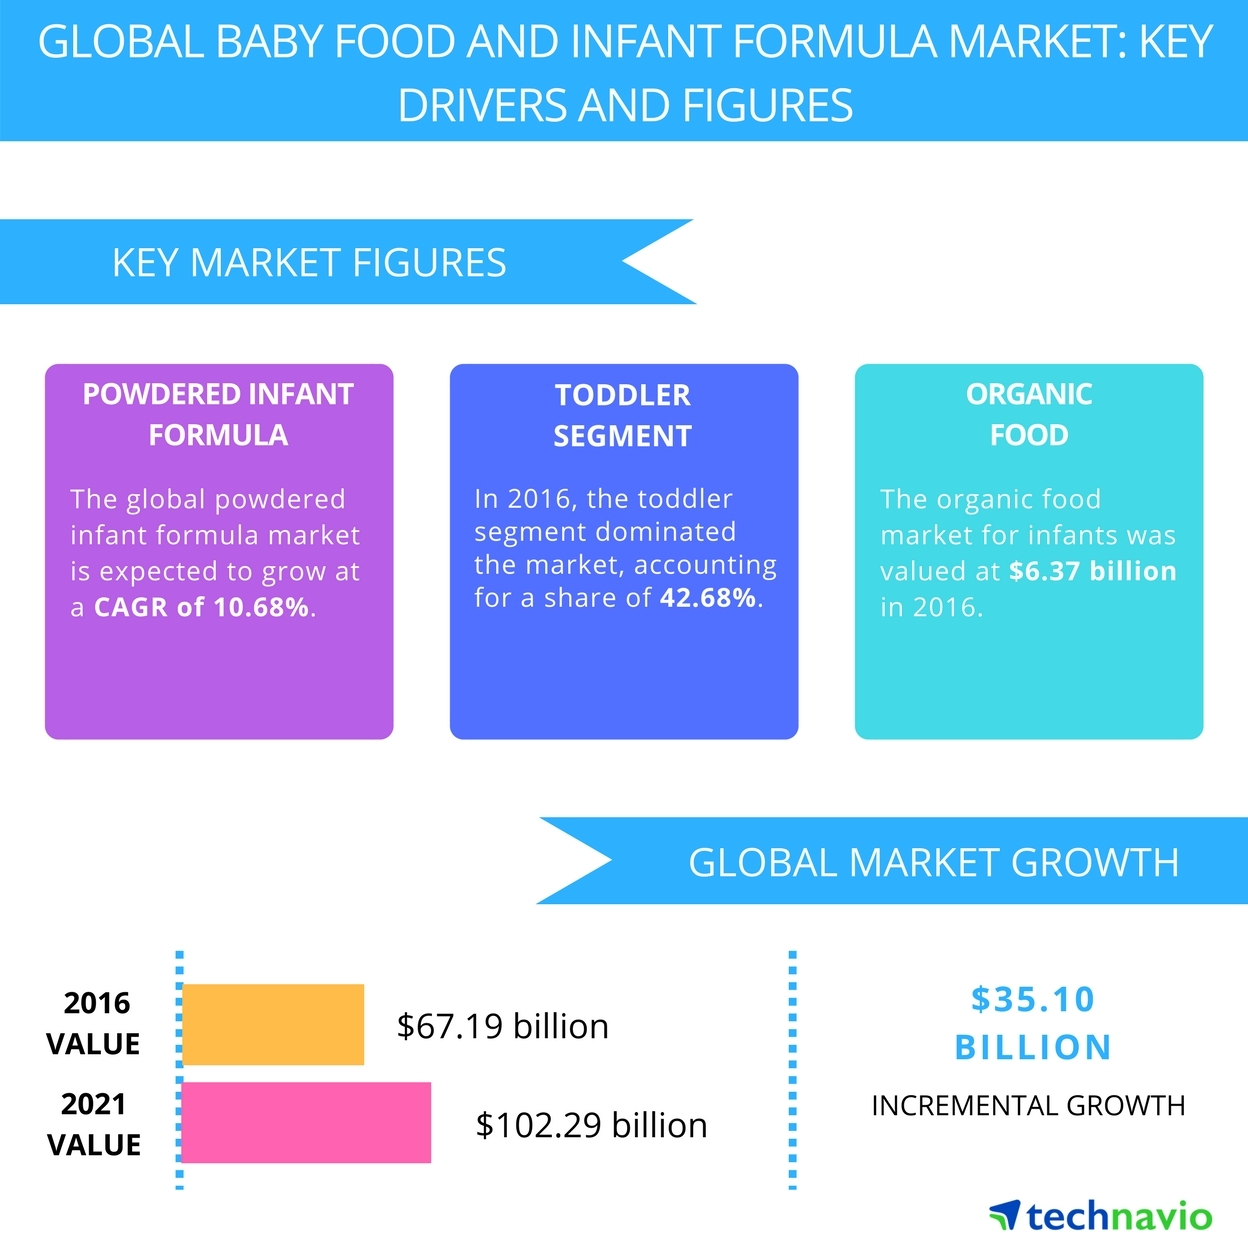 Technavio has published a new report on the global baby food and infant formula market from 2017-2021. (Photo: Business Wire)